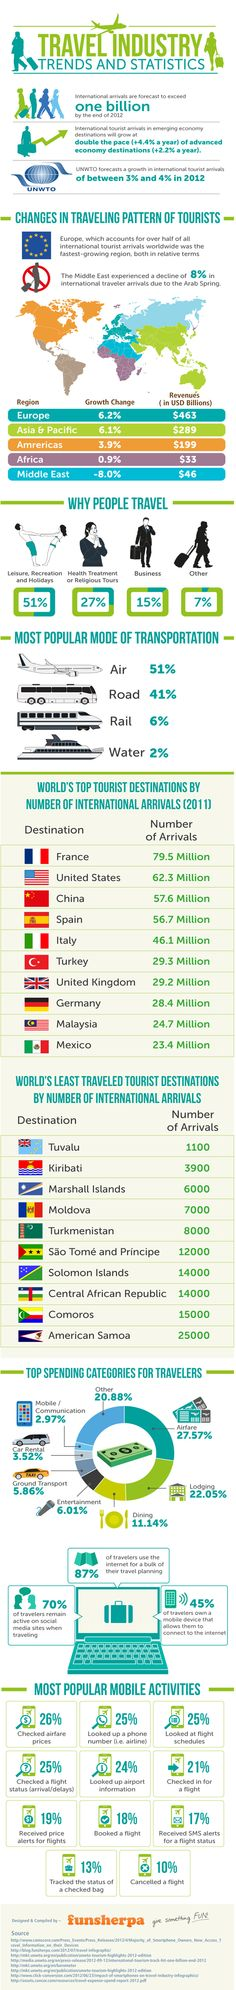 Travel industry trends infographic